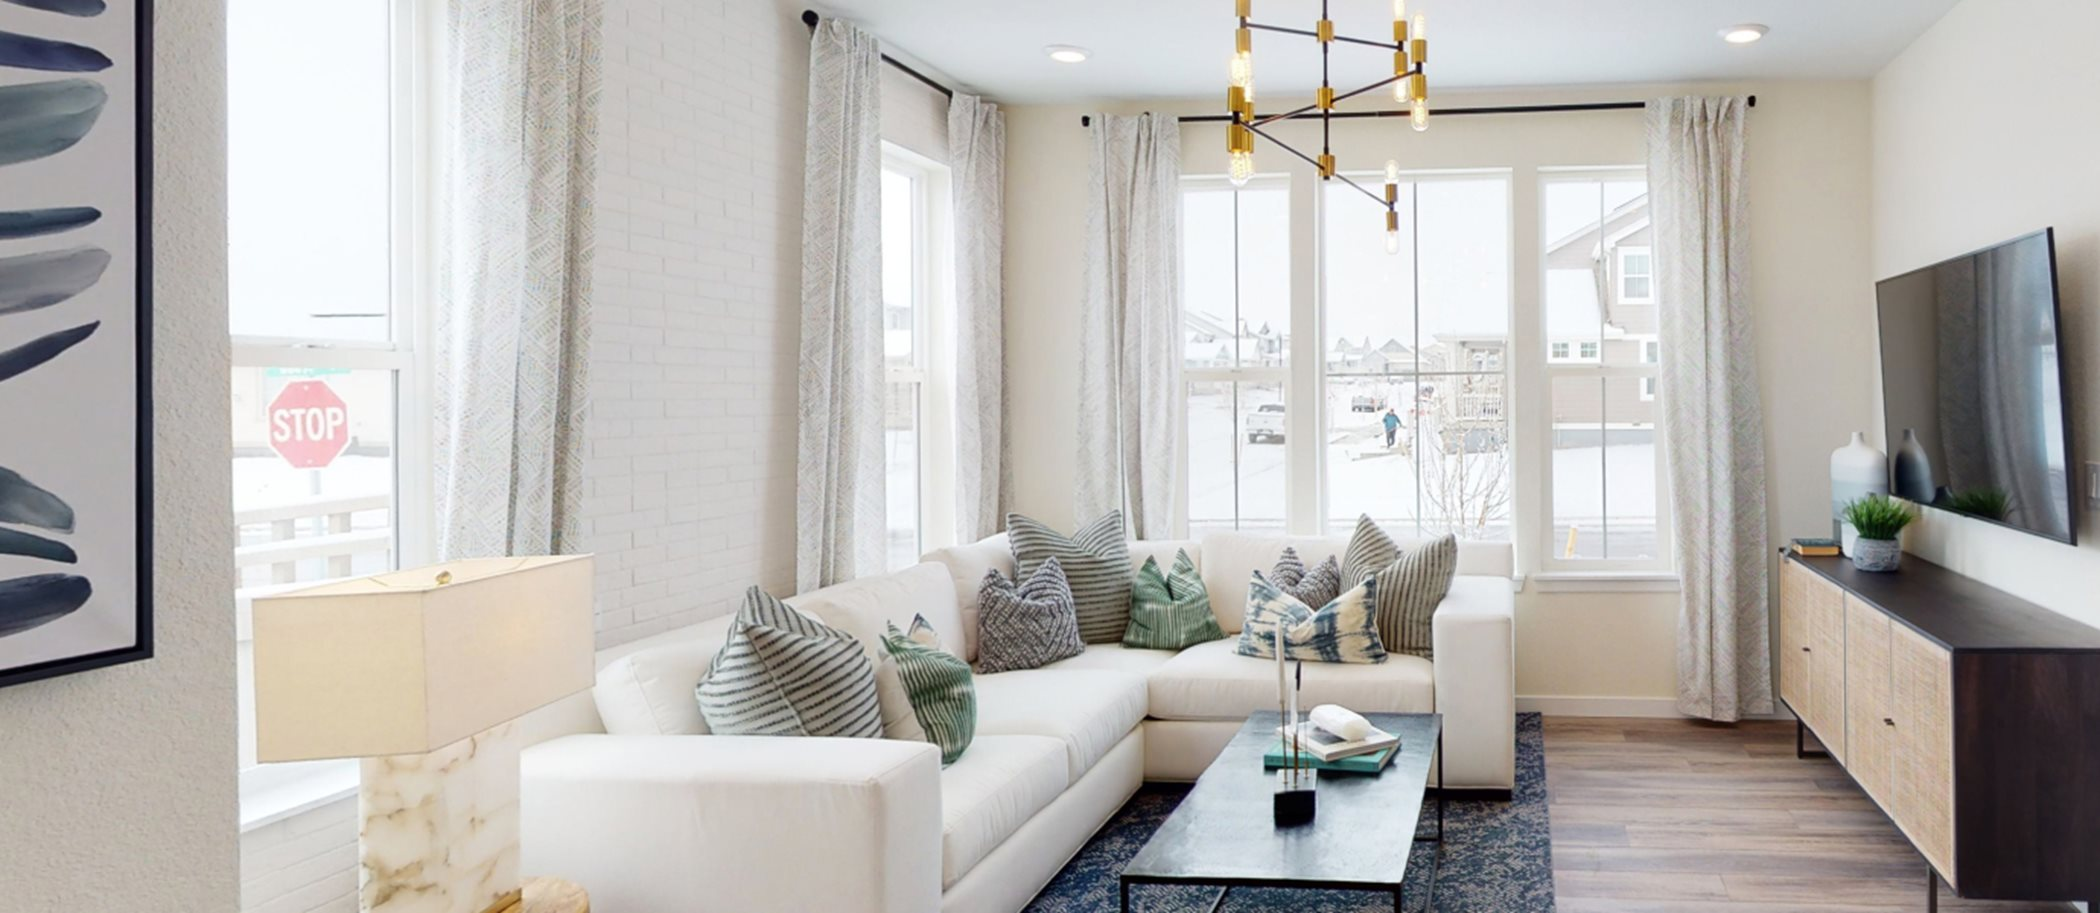 Compass Paired Homes Vibrant- Right Living Room